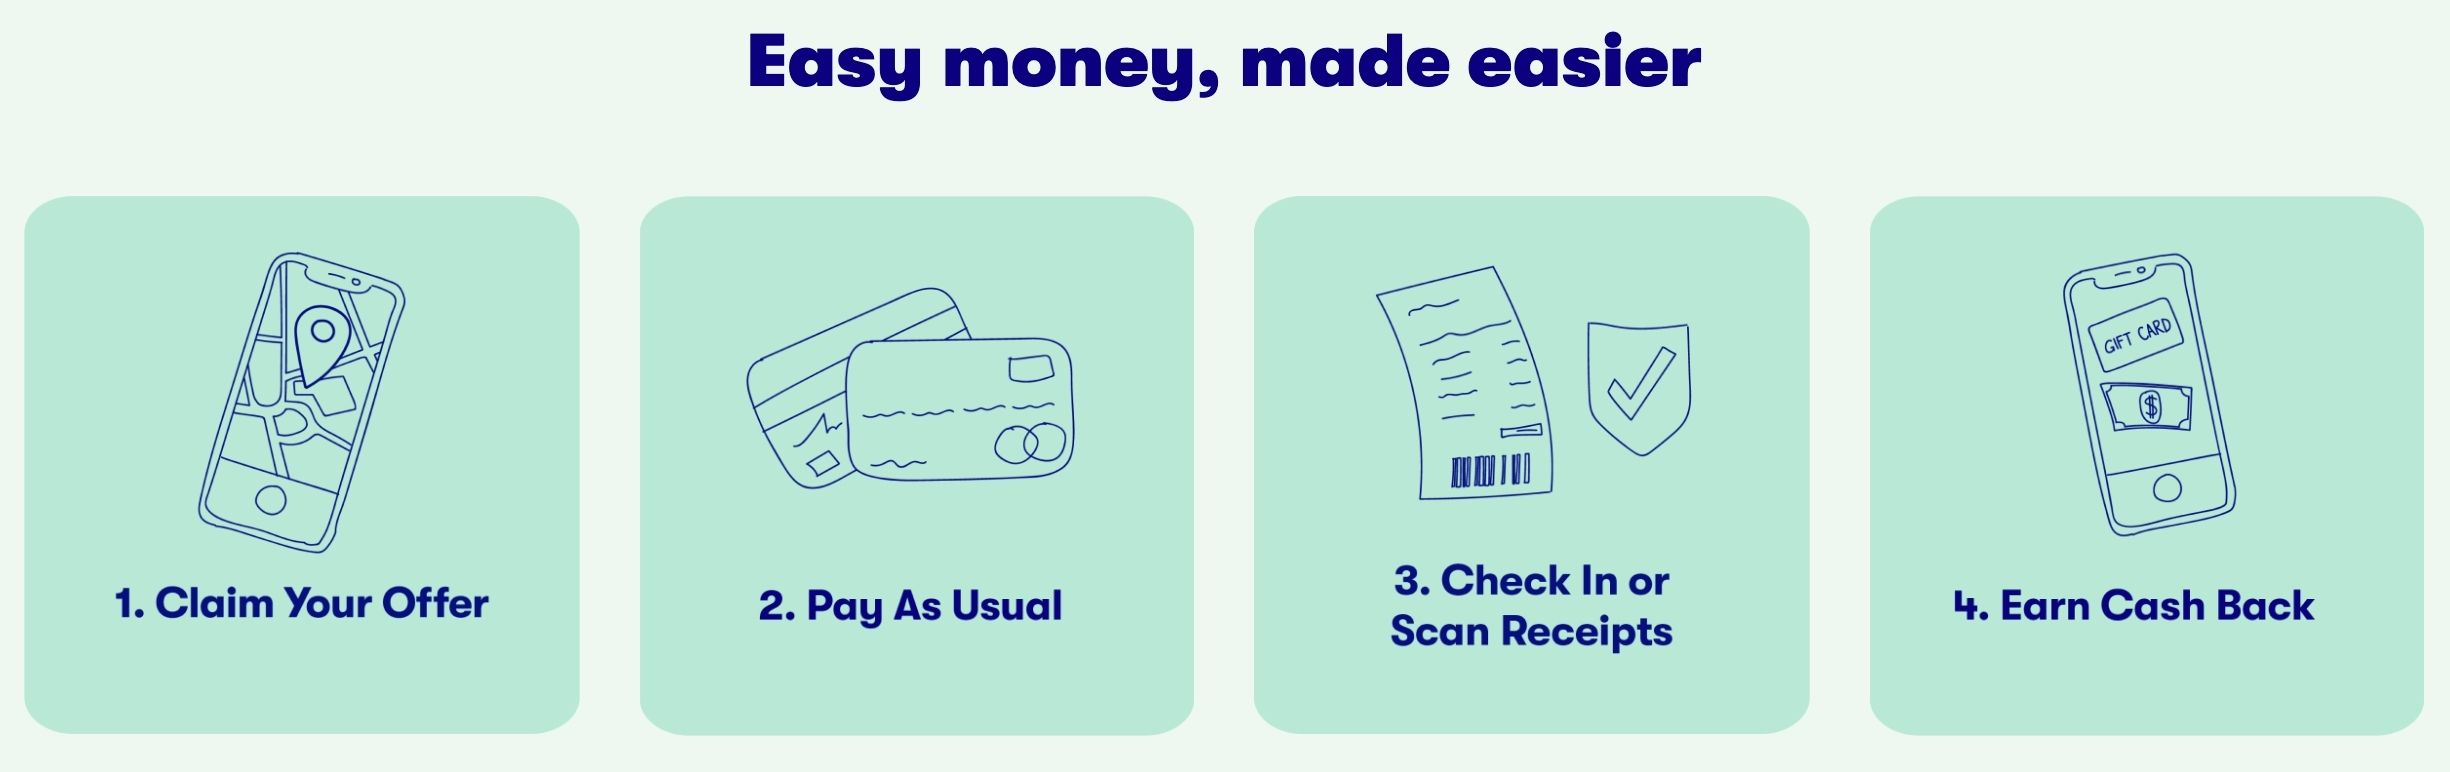 Here is an infographic pulled from the GetUpside website showing how-to get started using the app and start saving money. The first step is to claim your offer at the nearest gas station, restaurant, or grocery store. The second step is to pay as usual using the credit or debit card you have on file within the app. The third step is to either check-in when you arrive at the establishment, or scan and upload receipts to the app if check-in isn't available. The fourth step is to sit back and watch your cashback hit your account!